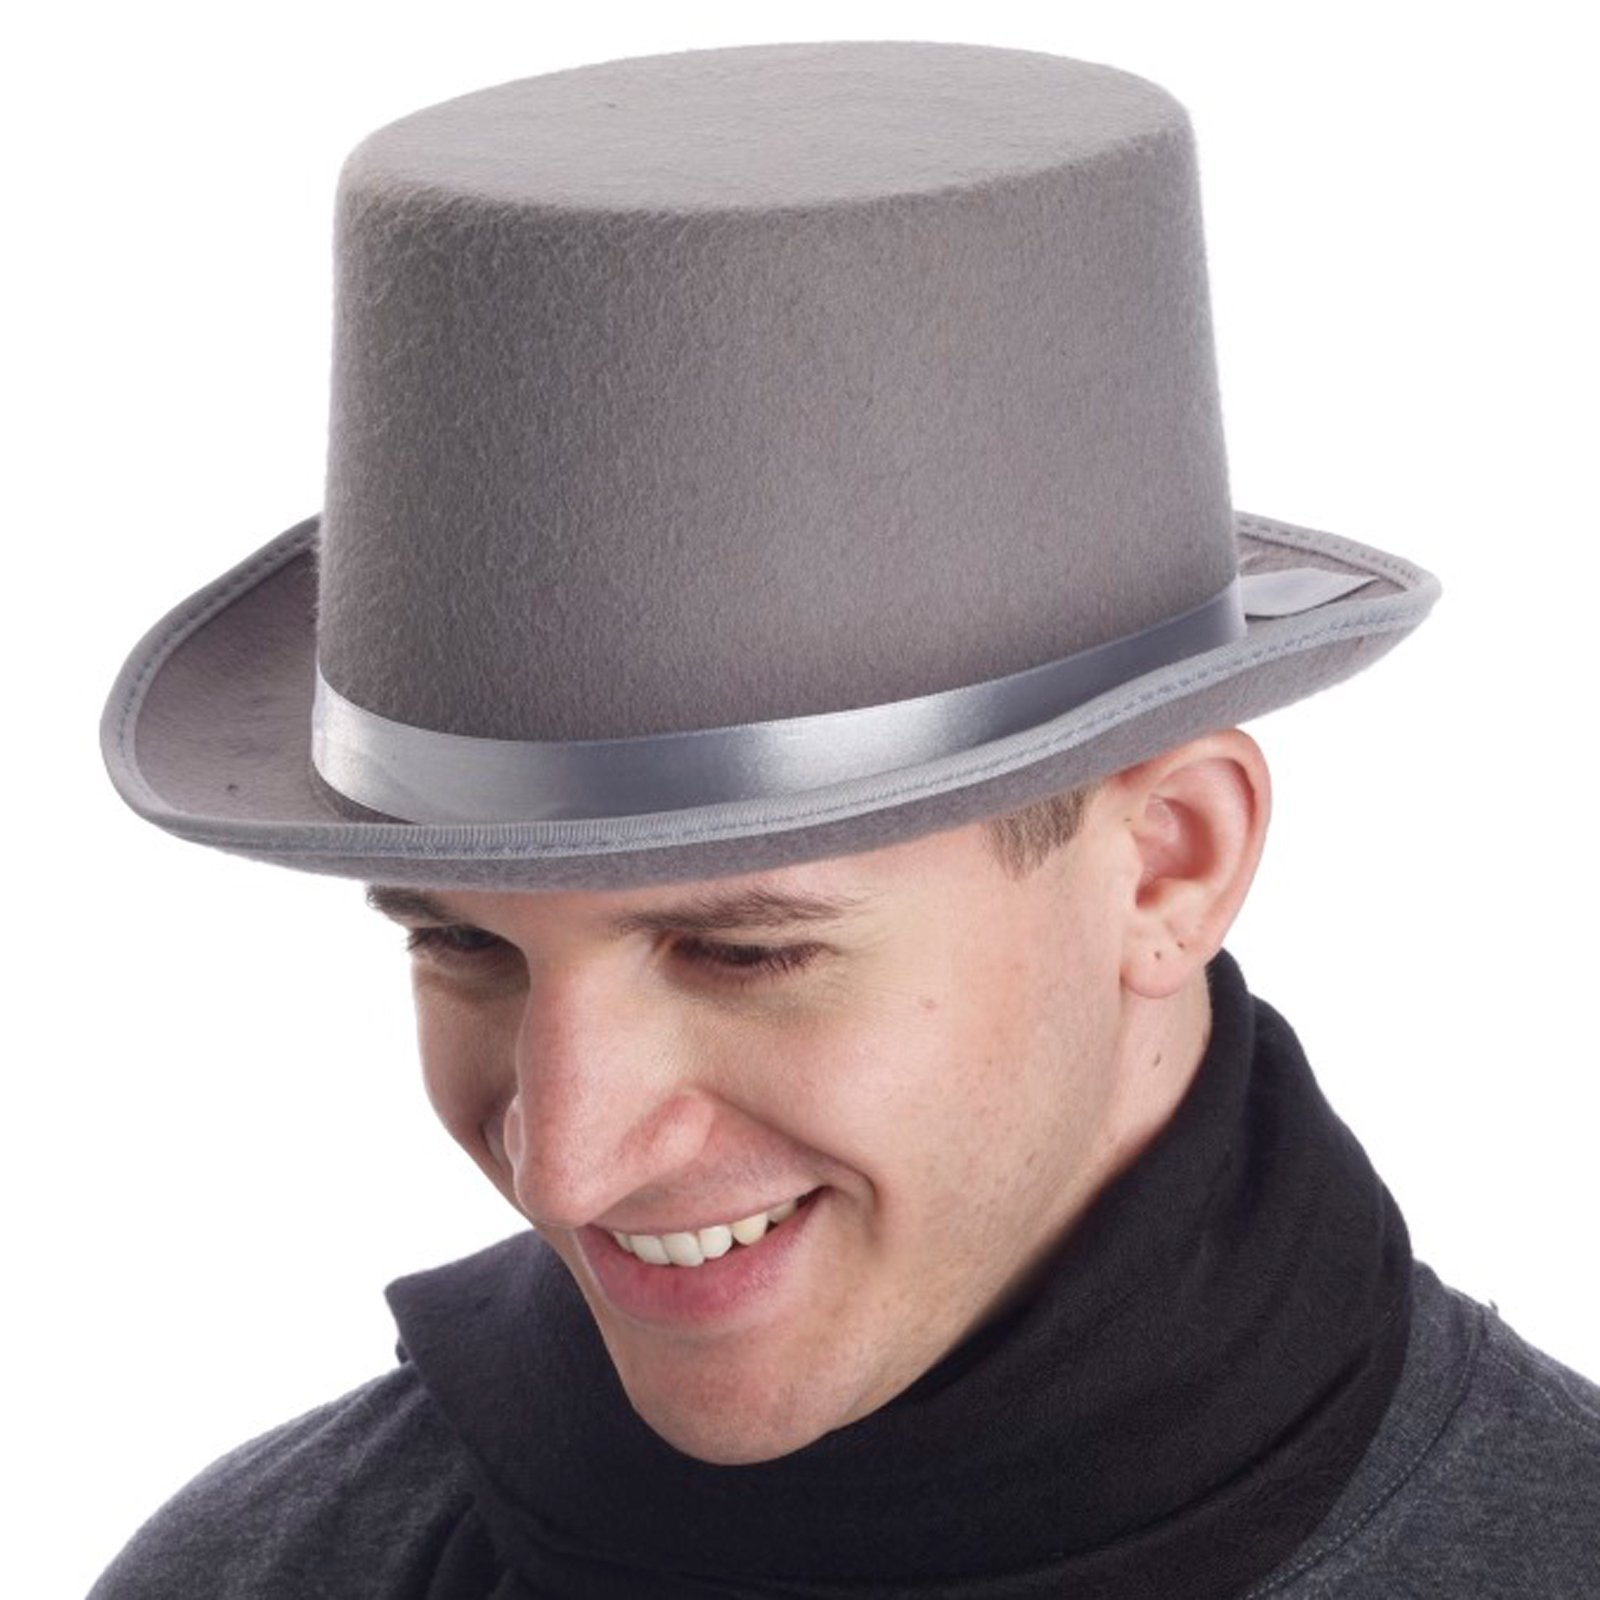 Super Deluxe Gray Top Hat (Adult)